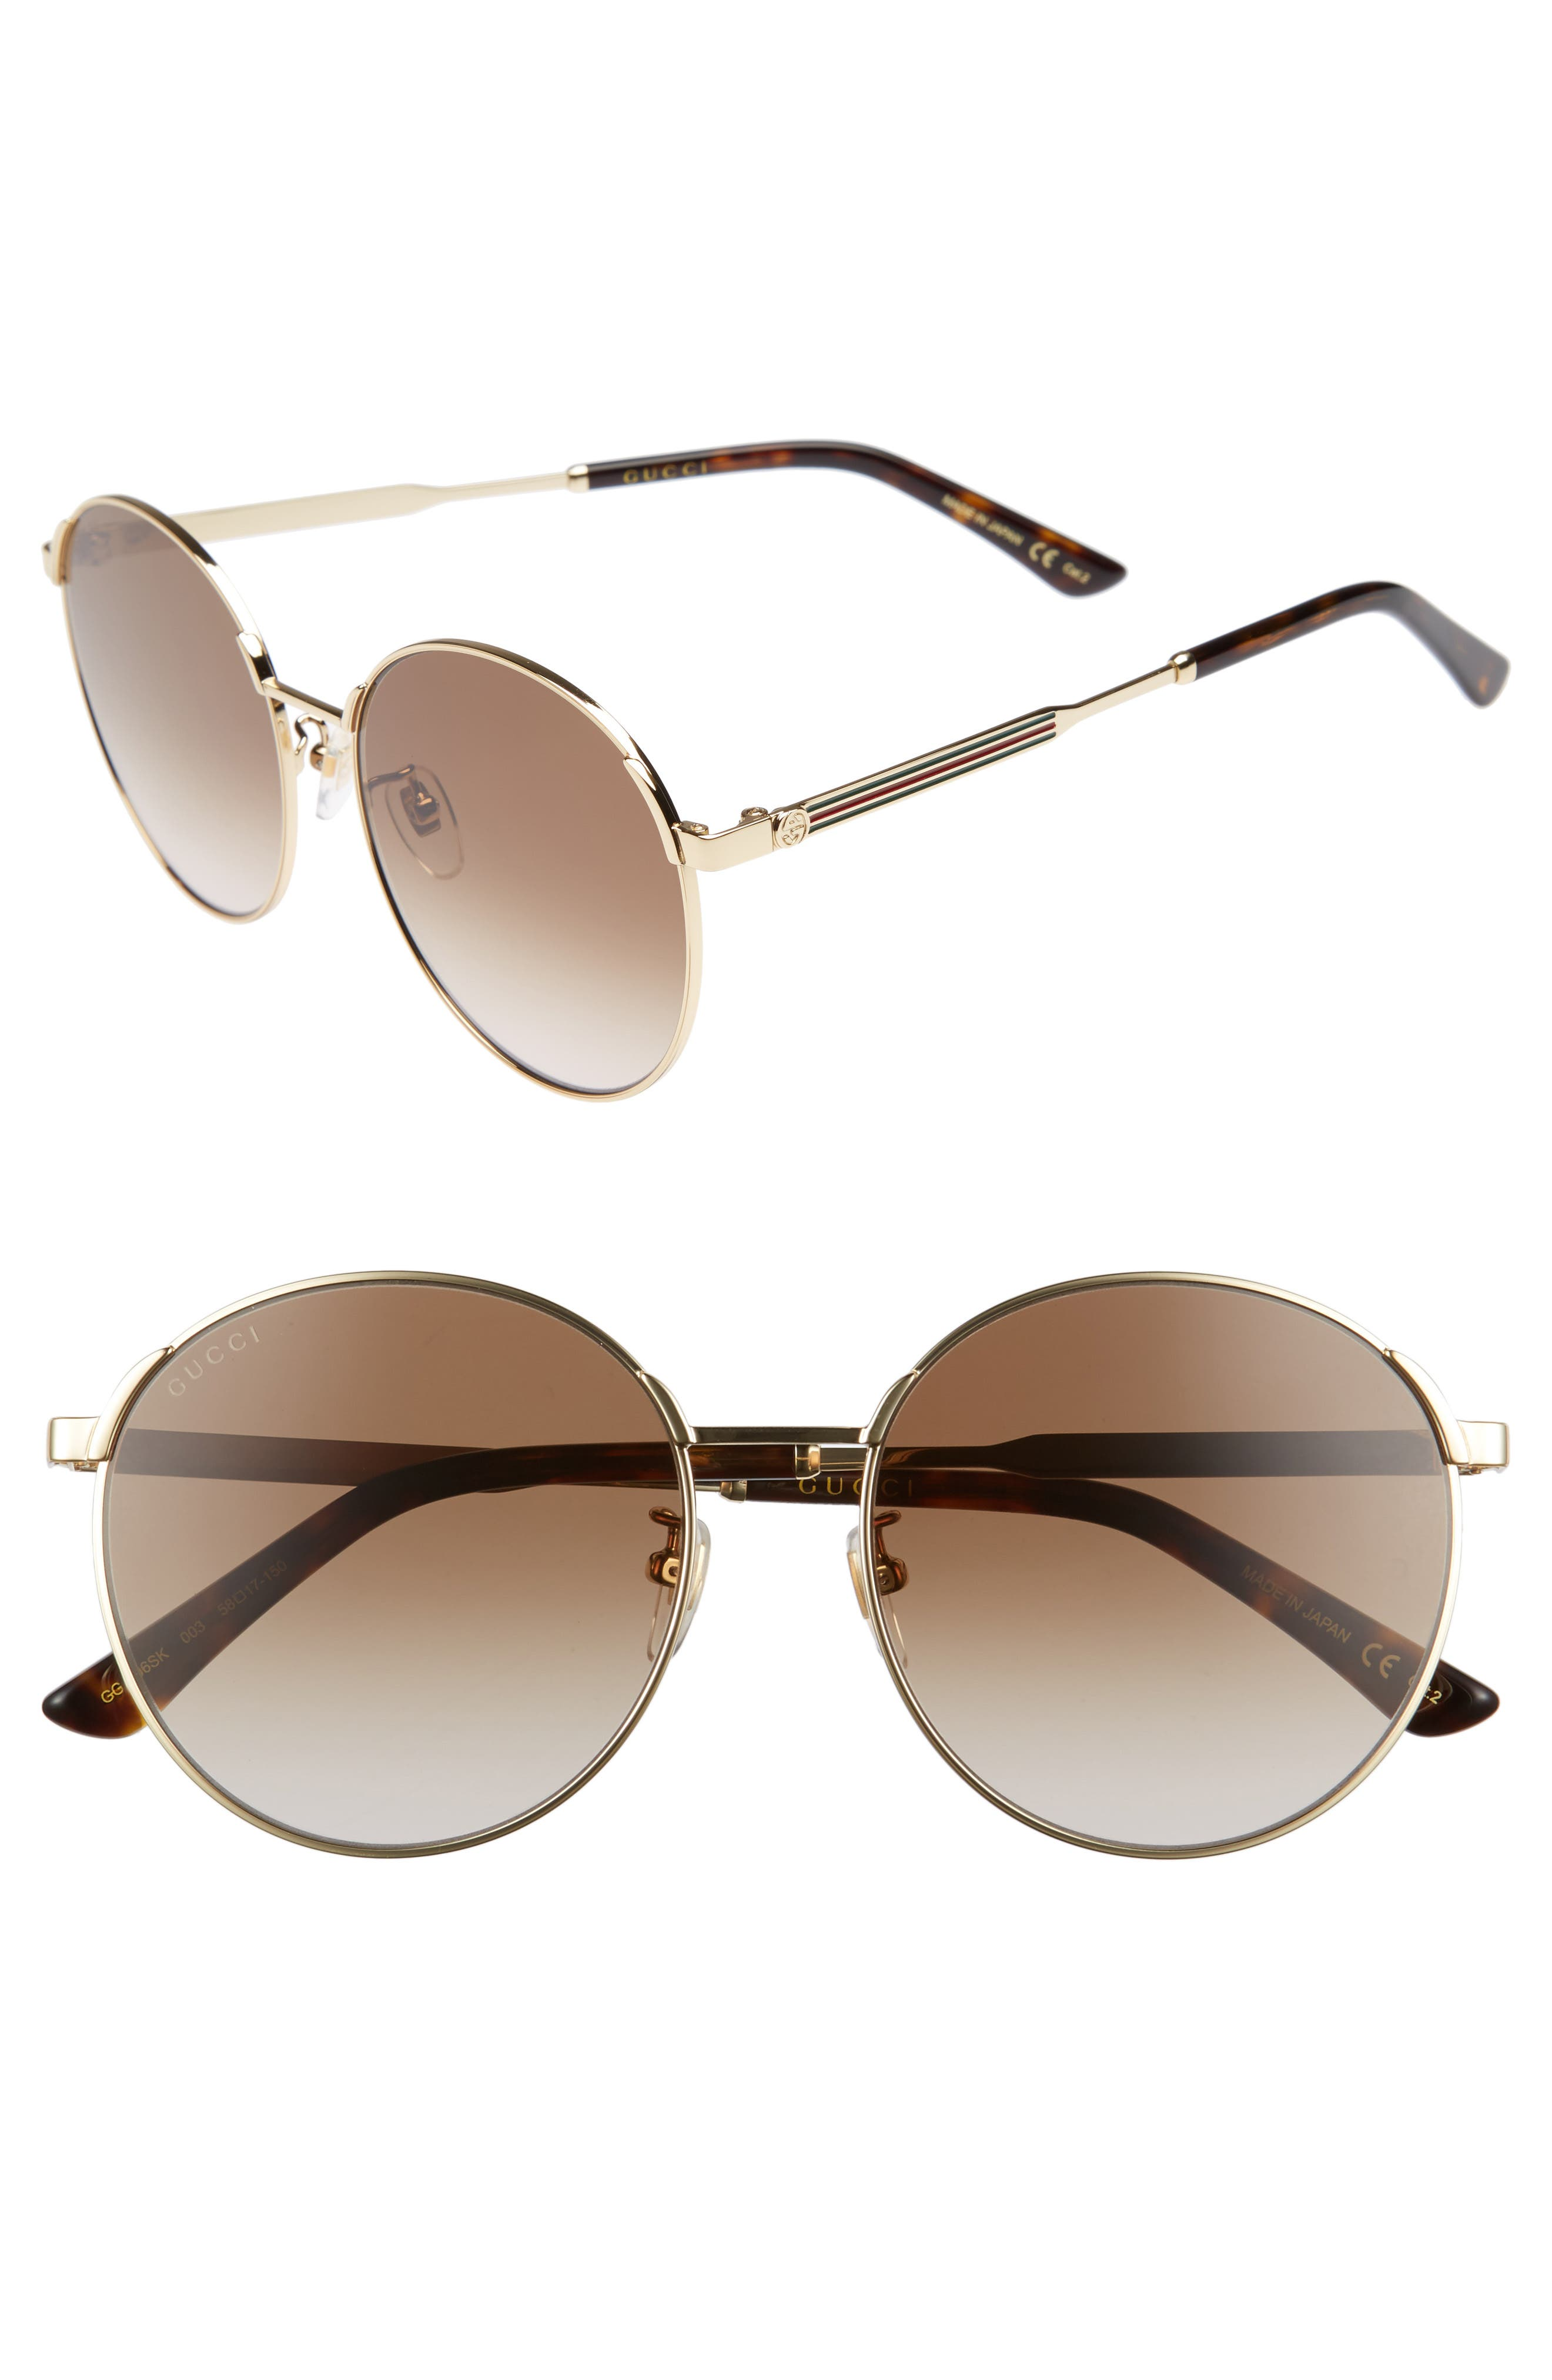 58mm Round Sunglasses,                             Main thumbnail 1, color,                             Gold/ Brown